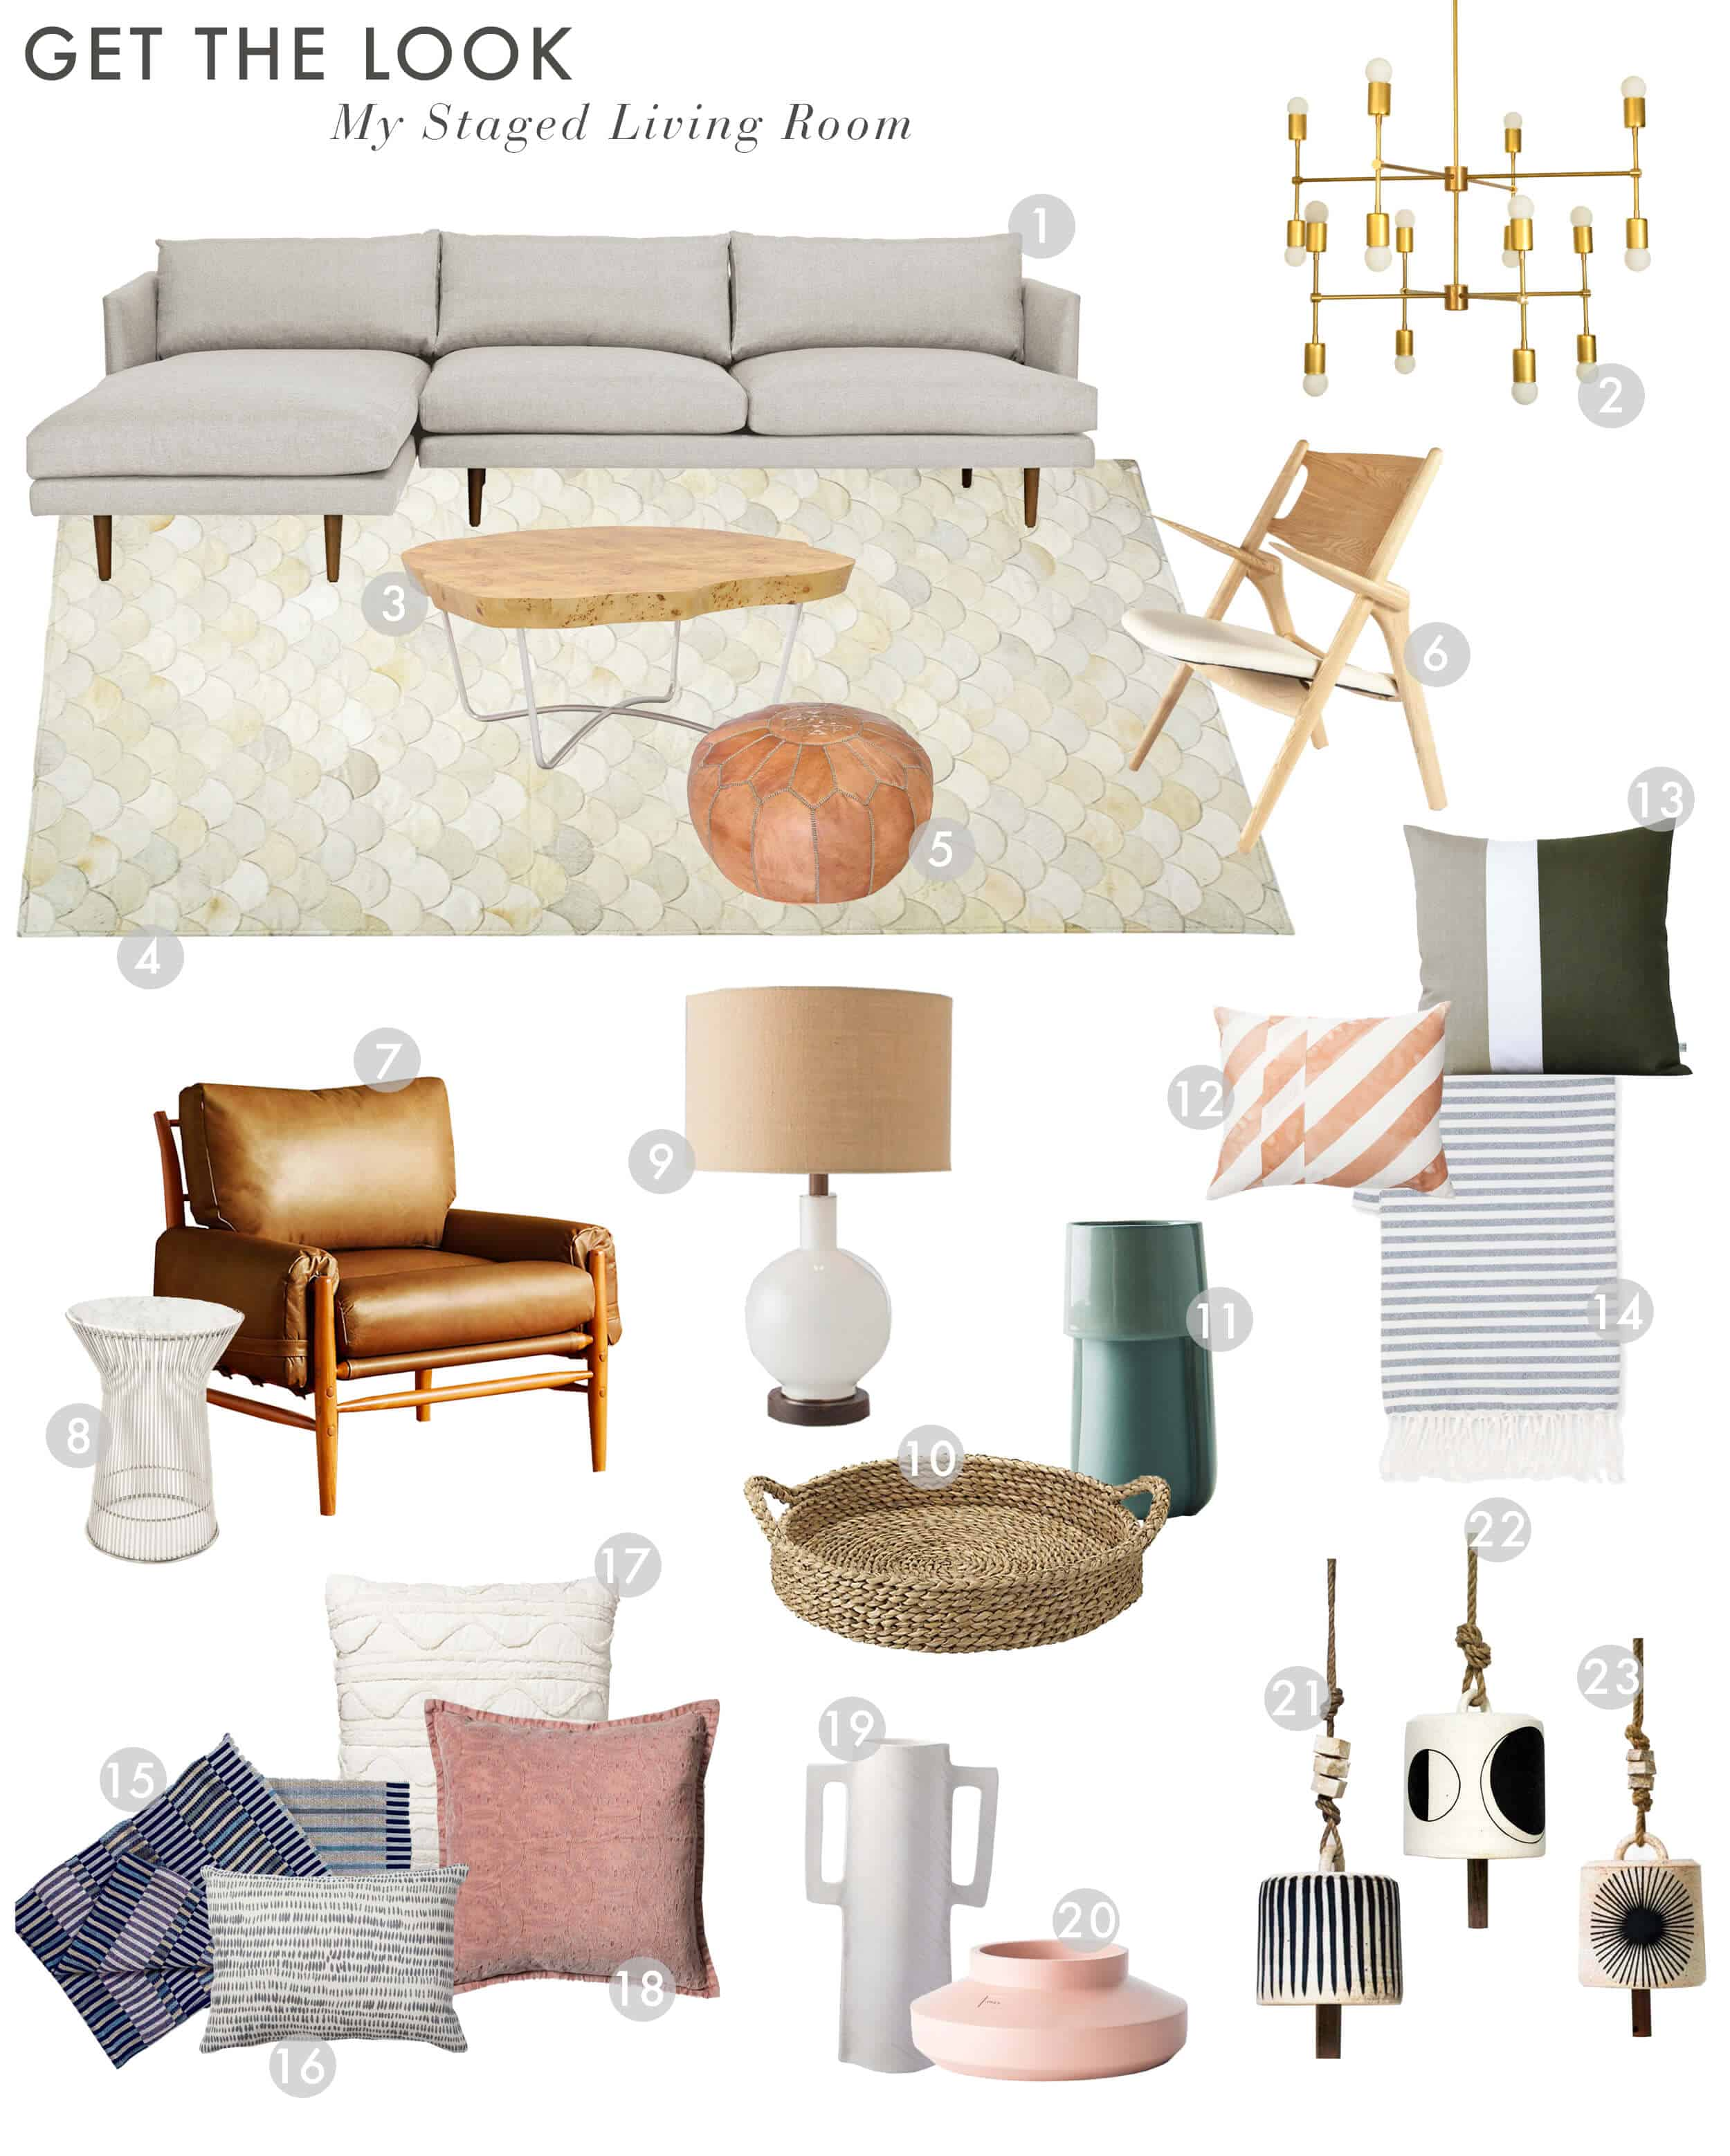 Emily Henderson Home Living Room Staging For Sale Curbed Get The Look1